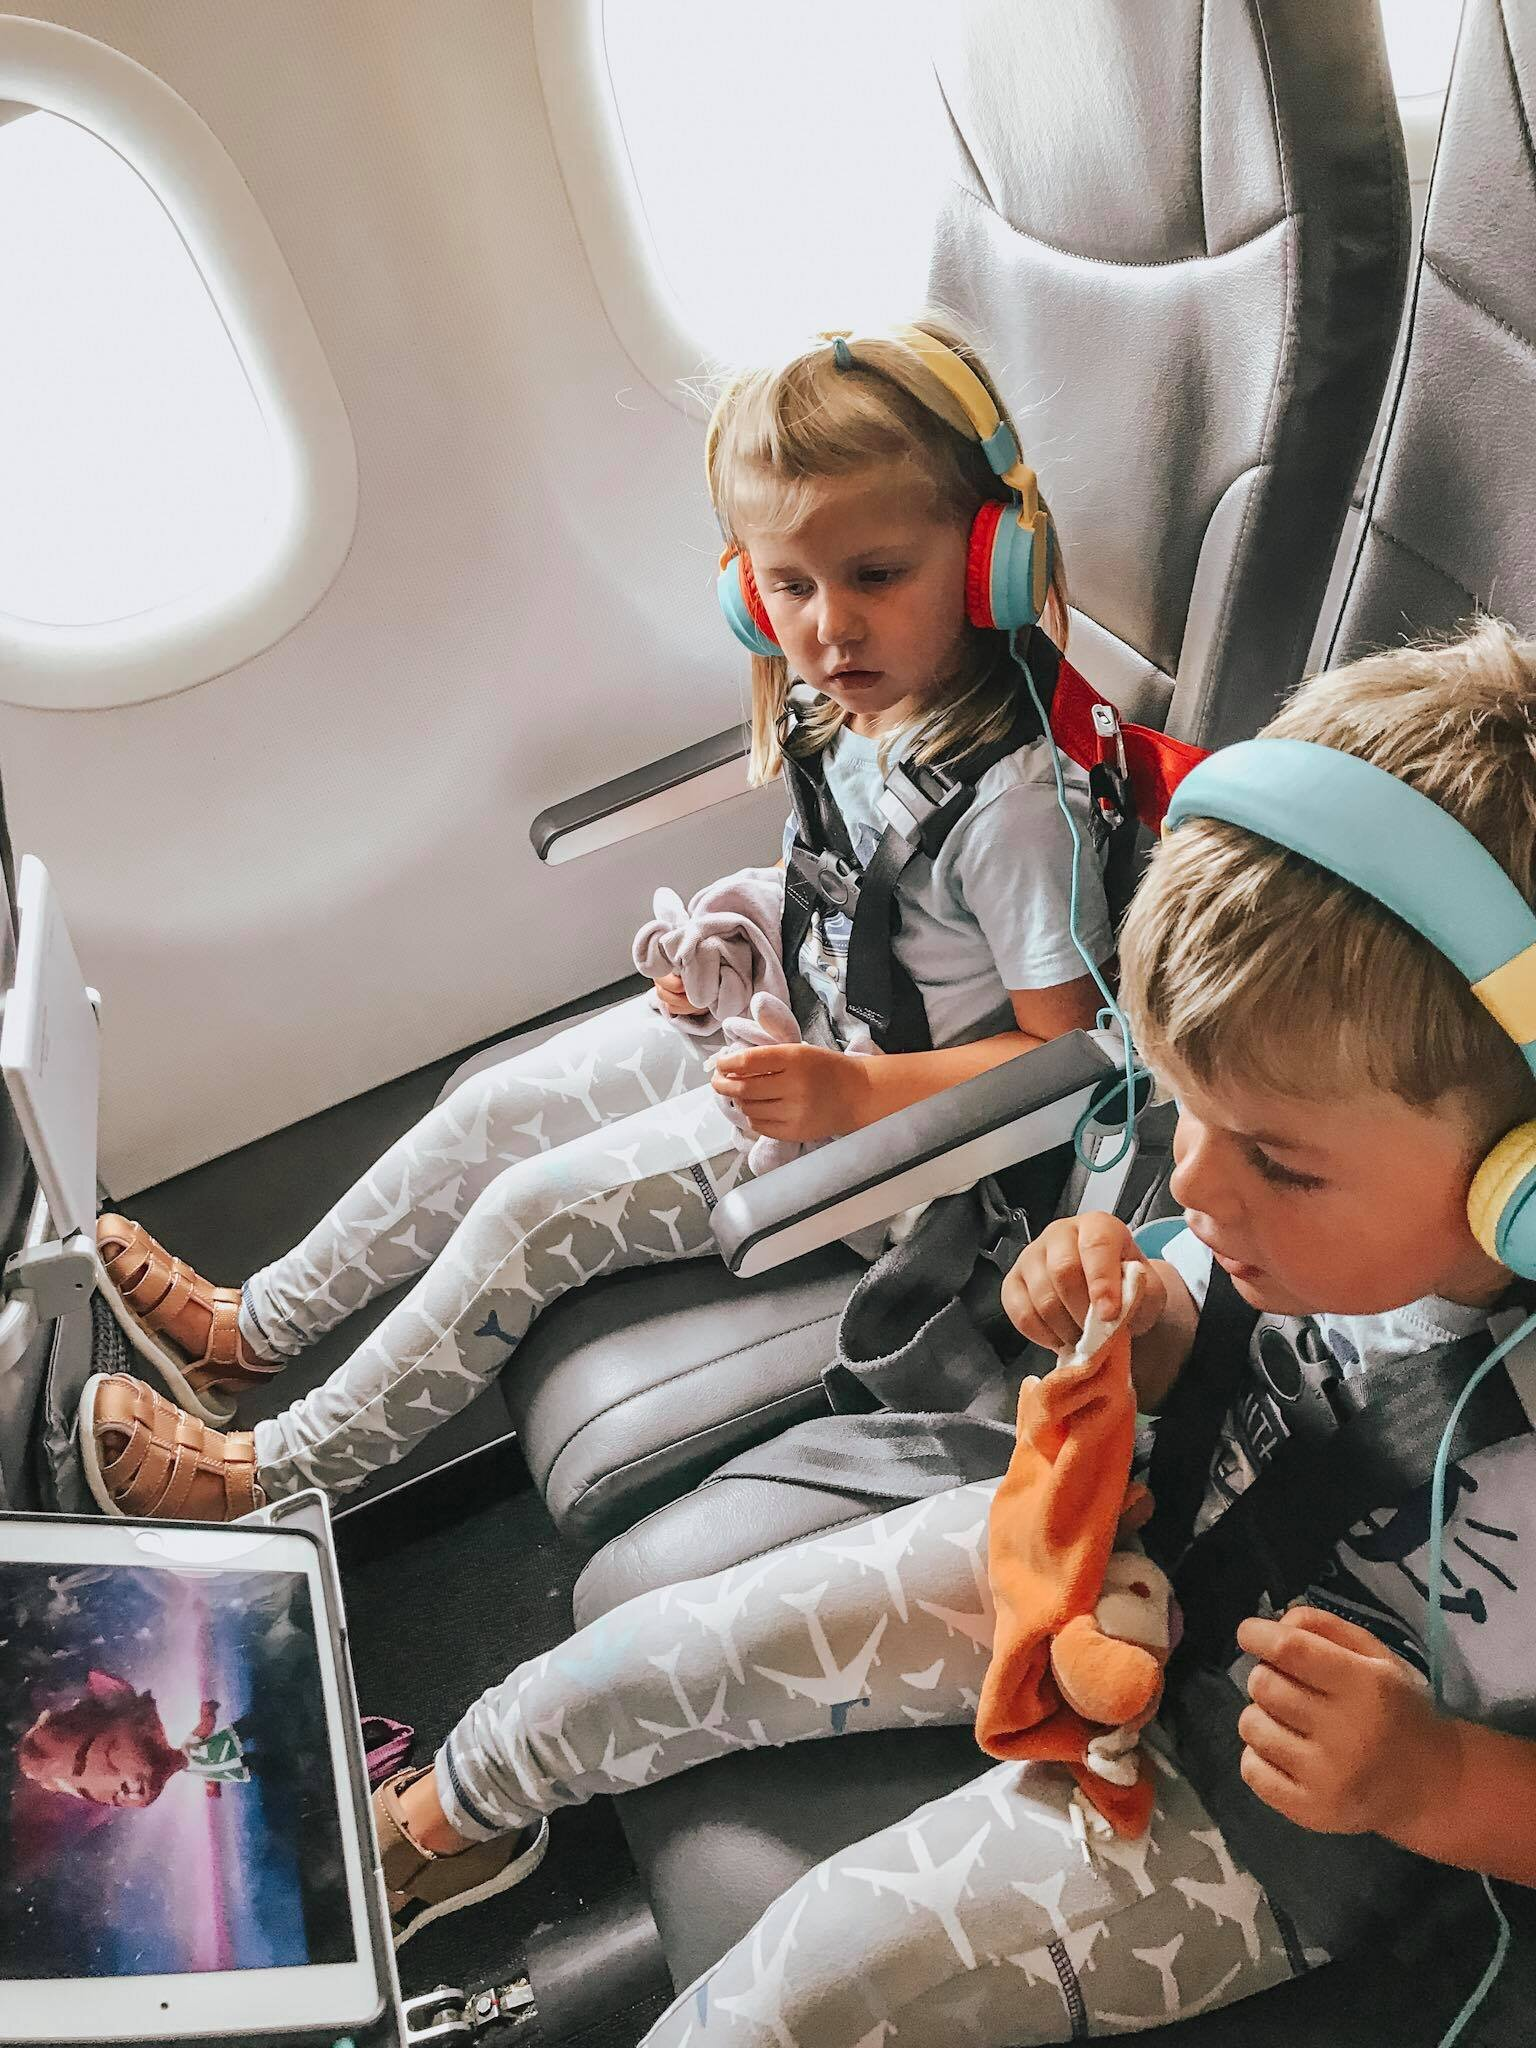 The Kids and the older version of these connecting headphones. Both can watch the same movie because the headphones inter-connect! Also check out their awesome CARES harnesses!